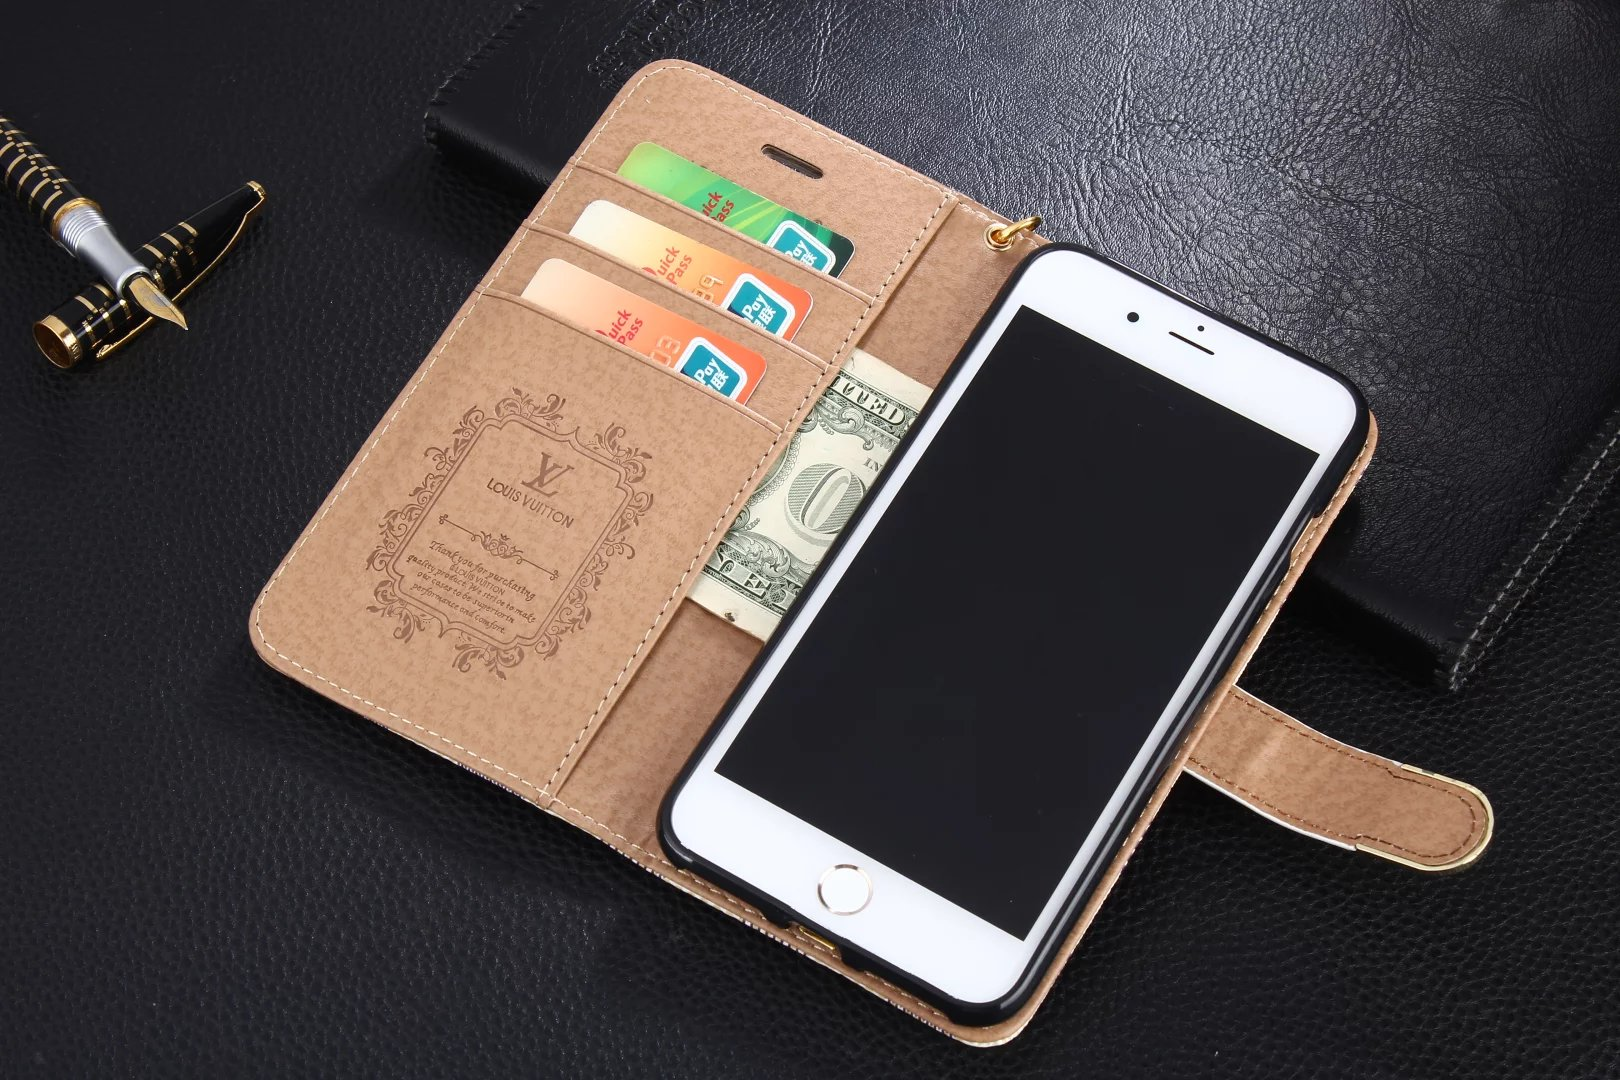 iphone 5s case price cool iphone covers 5s fashion iphone5s 5 SE case designer ipad 5 case popular iphone 5 cases iphone cases 5 s case untuk iphone 5s different iphone 5s cases apple 5 case